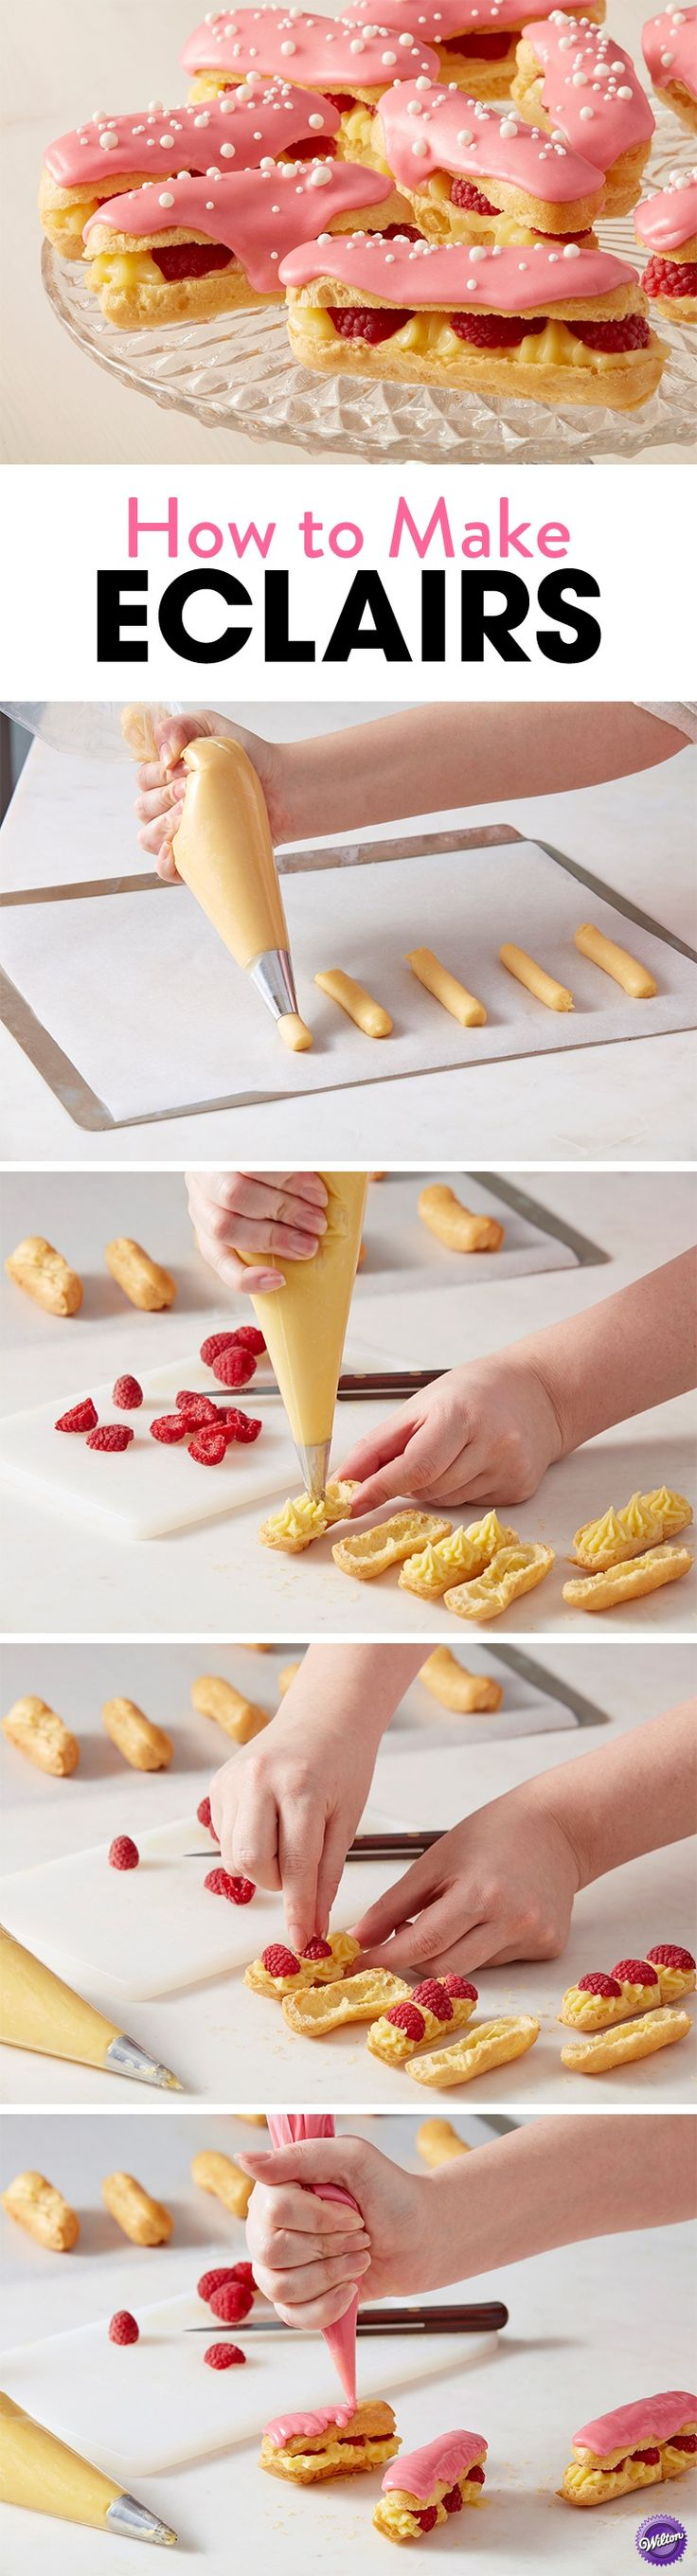 How to Make Eclairs - Learn how to make these tasty White Chocolate Raspberry Eclairs that are perfect for an Easter brunch or a springtime soiree are sure to impress. Top your éclairs with a fresh raspberry glaze for an added touch of sweetness. Makes about 30 eclairs.